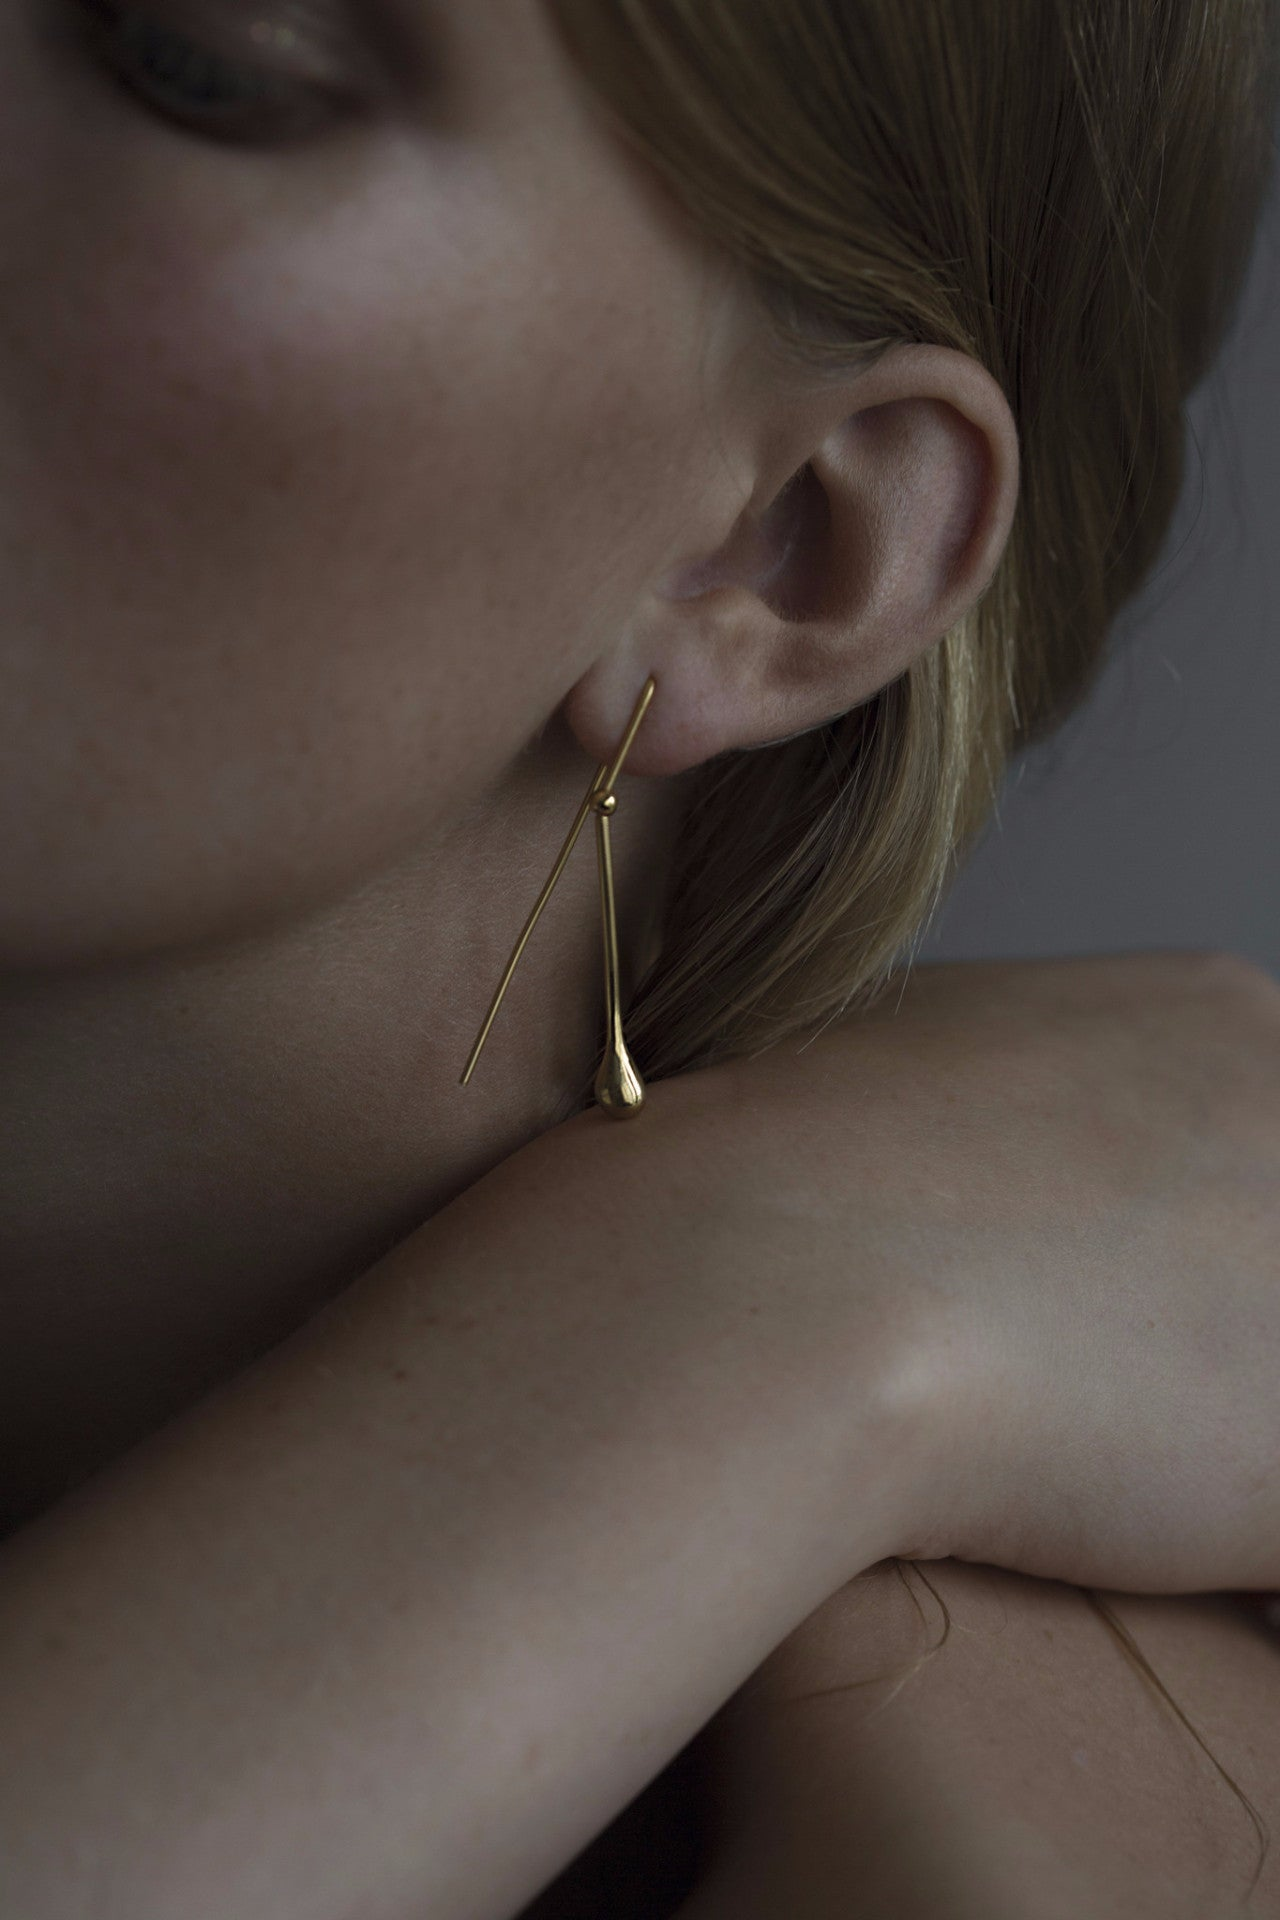 MOVING TEARDROP · EARRING · 18KT. GOLD